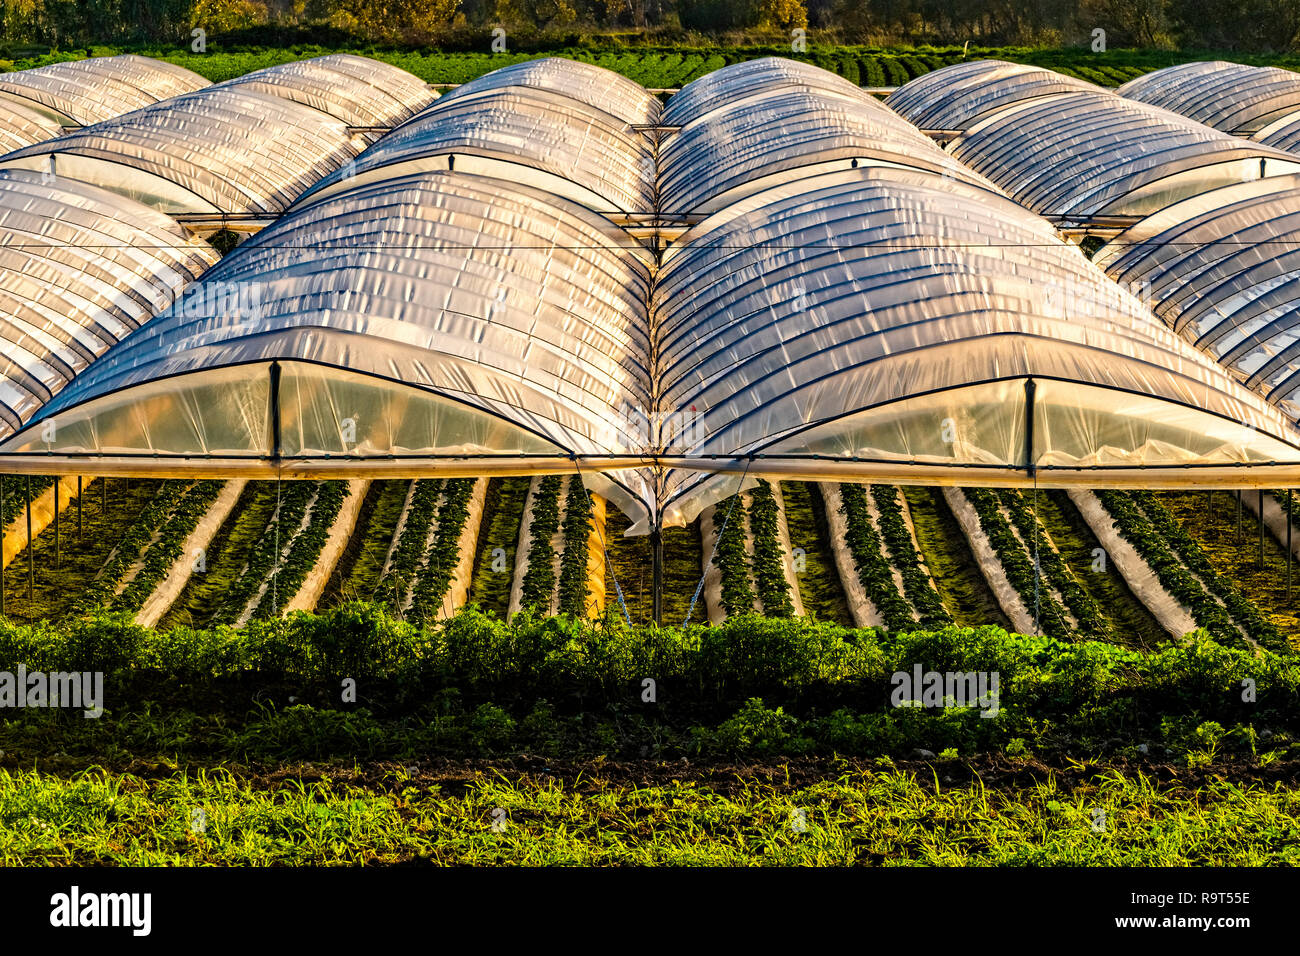 Italy Basilicata Metaponto strawberries grown in greenhouses - Stock Image